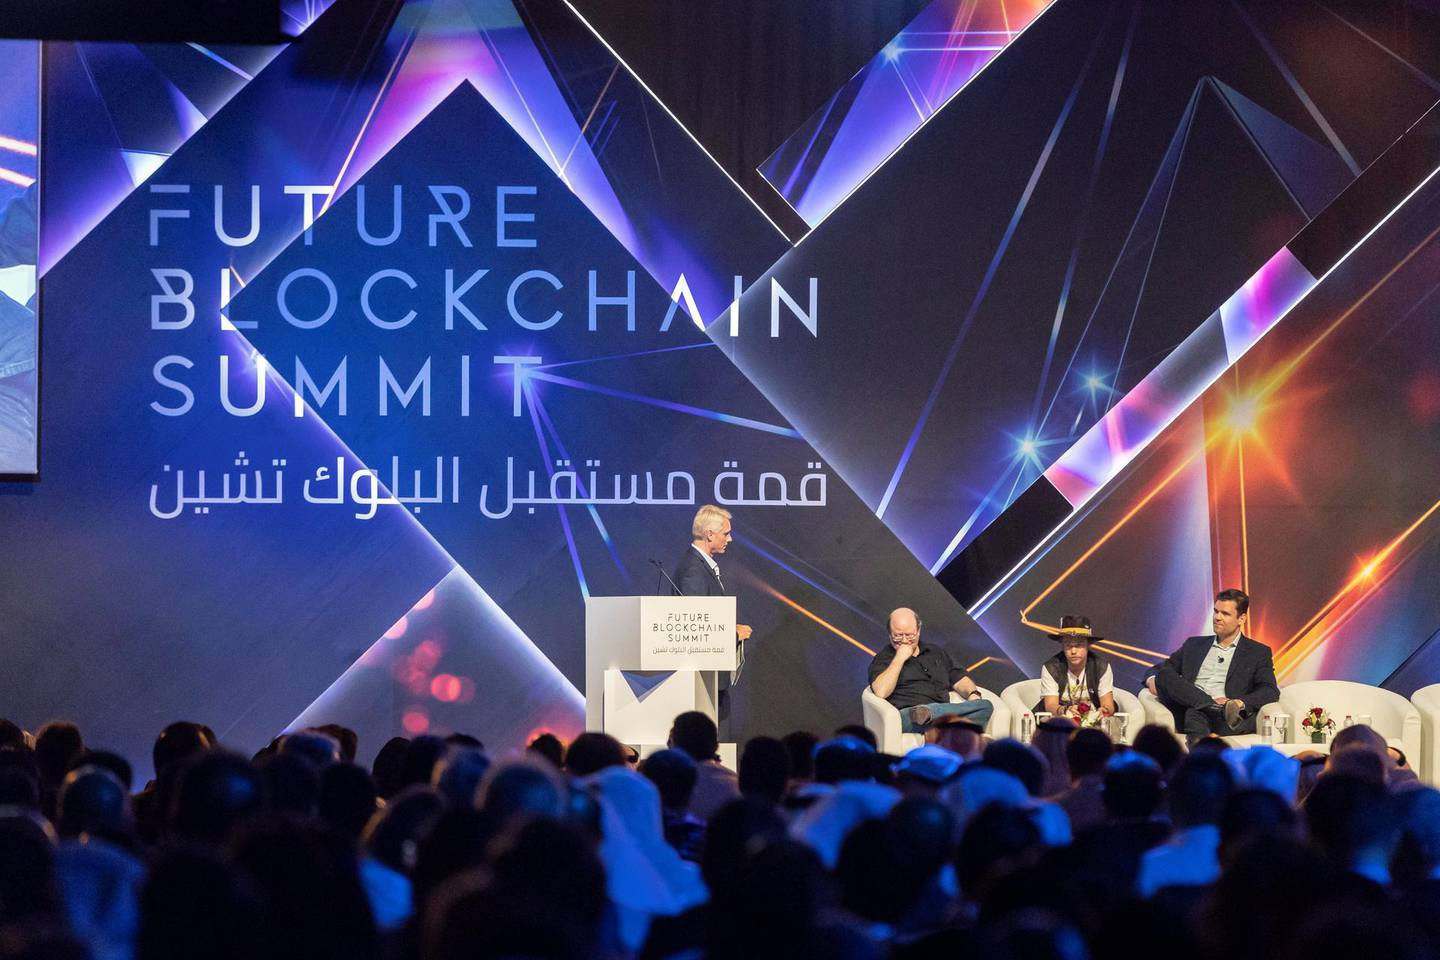 DUBAI, UNITED ARAB EMIRATES. 02 MAY 2018. Future Blockchain Summit held at the Trade Center. Opening remarks. Alex Tapscott, Co-Founder - Blockchain Research Institute, Brock Pierce, Entrepreneur, VC and Philanthropist - Blockchain Foundation, Dr. Larry Sanger, Co-founder - Wikipedia and Ken Rutkowski, Founder -MeTAL, Co-Founder - Business Rockstars and KenRadio Broadcasting - MeTAL. (Photo: Antonie Robertson/The National) Journalist: Sarmad Khan. Section: Business.